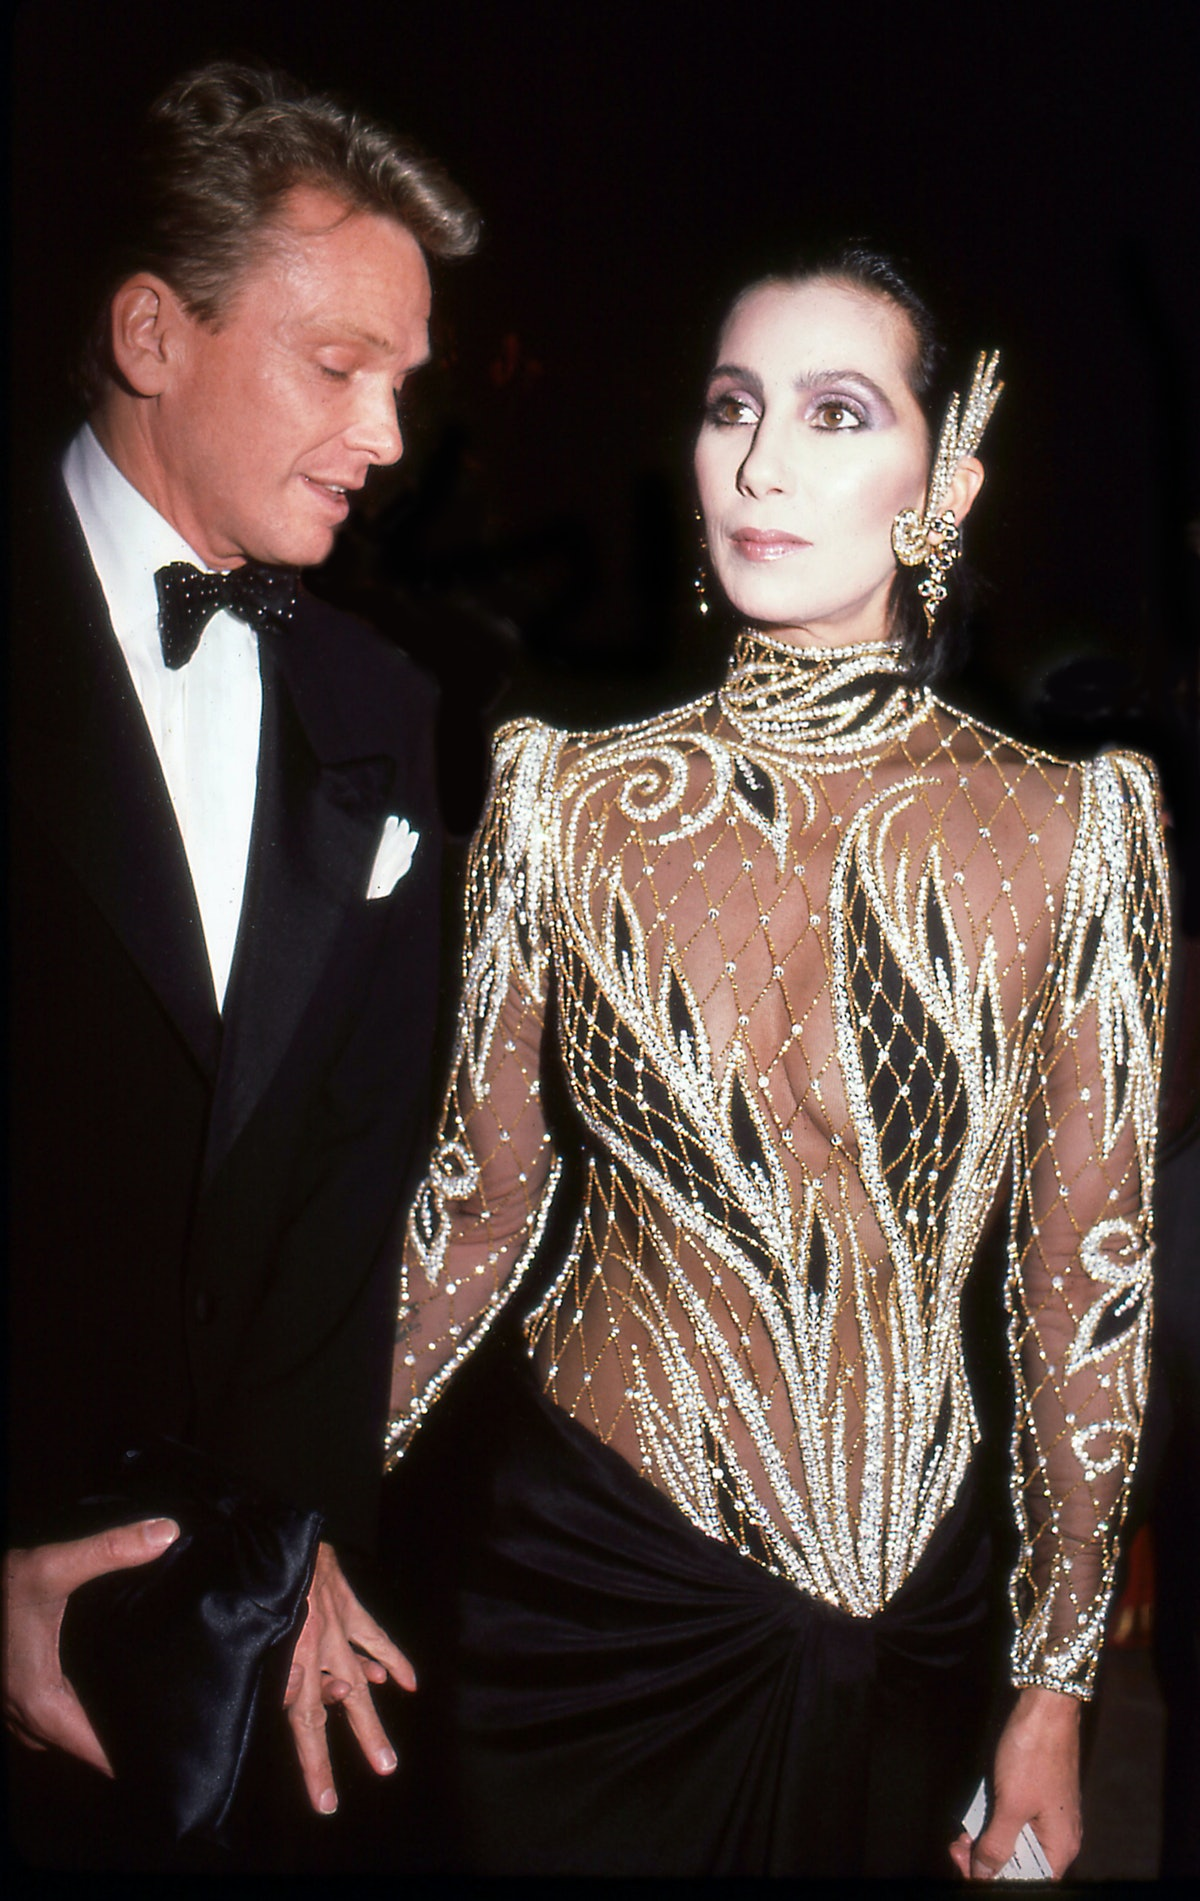 Designer Bob Mackie and the singer and actress Cher attend the Costume Institute Gala at the Metropo...